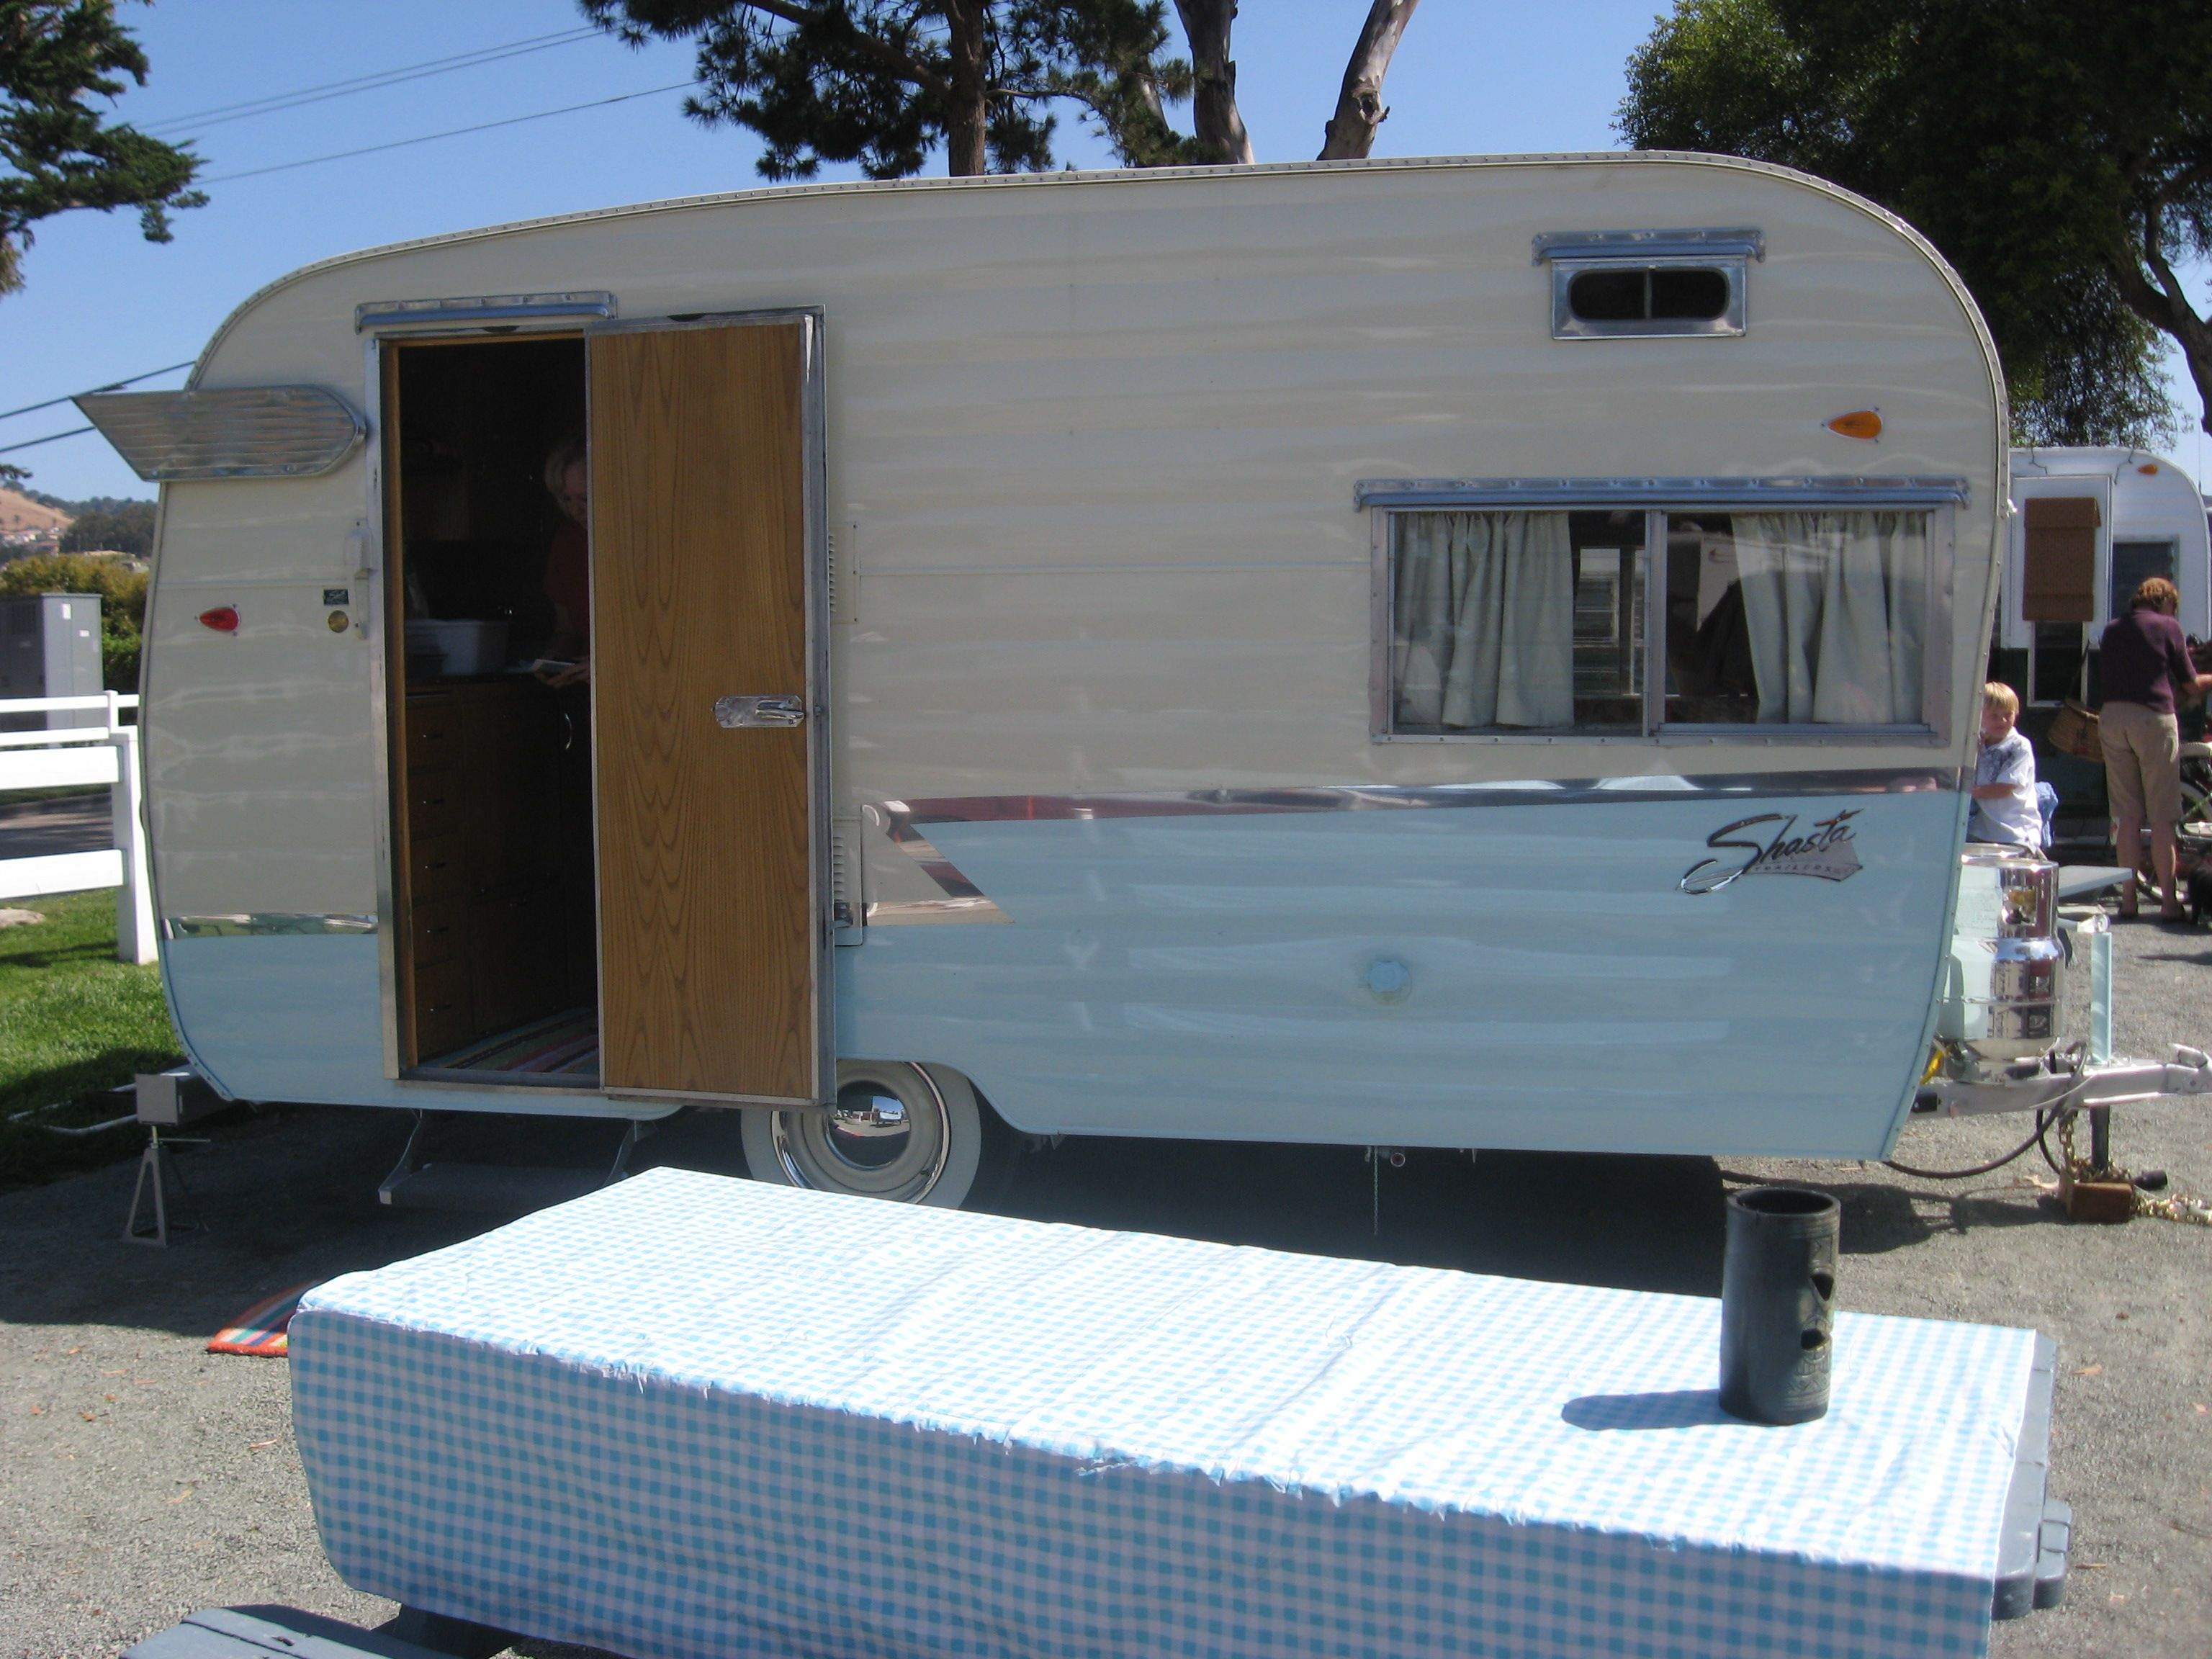 Our little tray tray hotcakes 1963 shasta 16scs awning by pink flamingo awnings vintage trailers pinterest vintage trailers and vintage travel